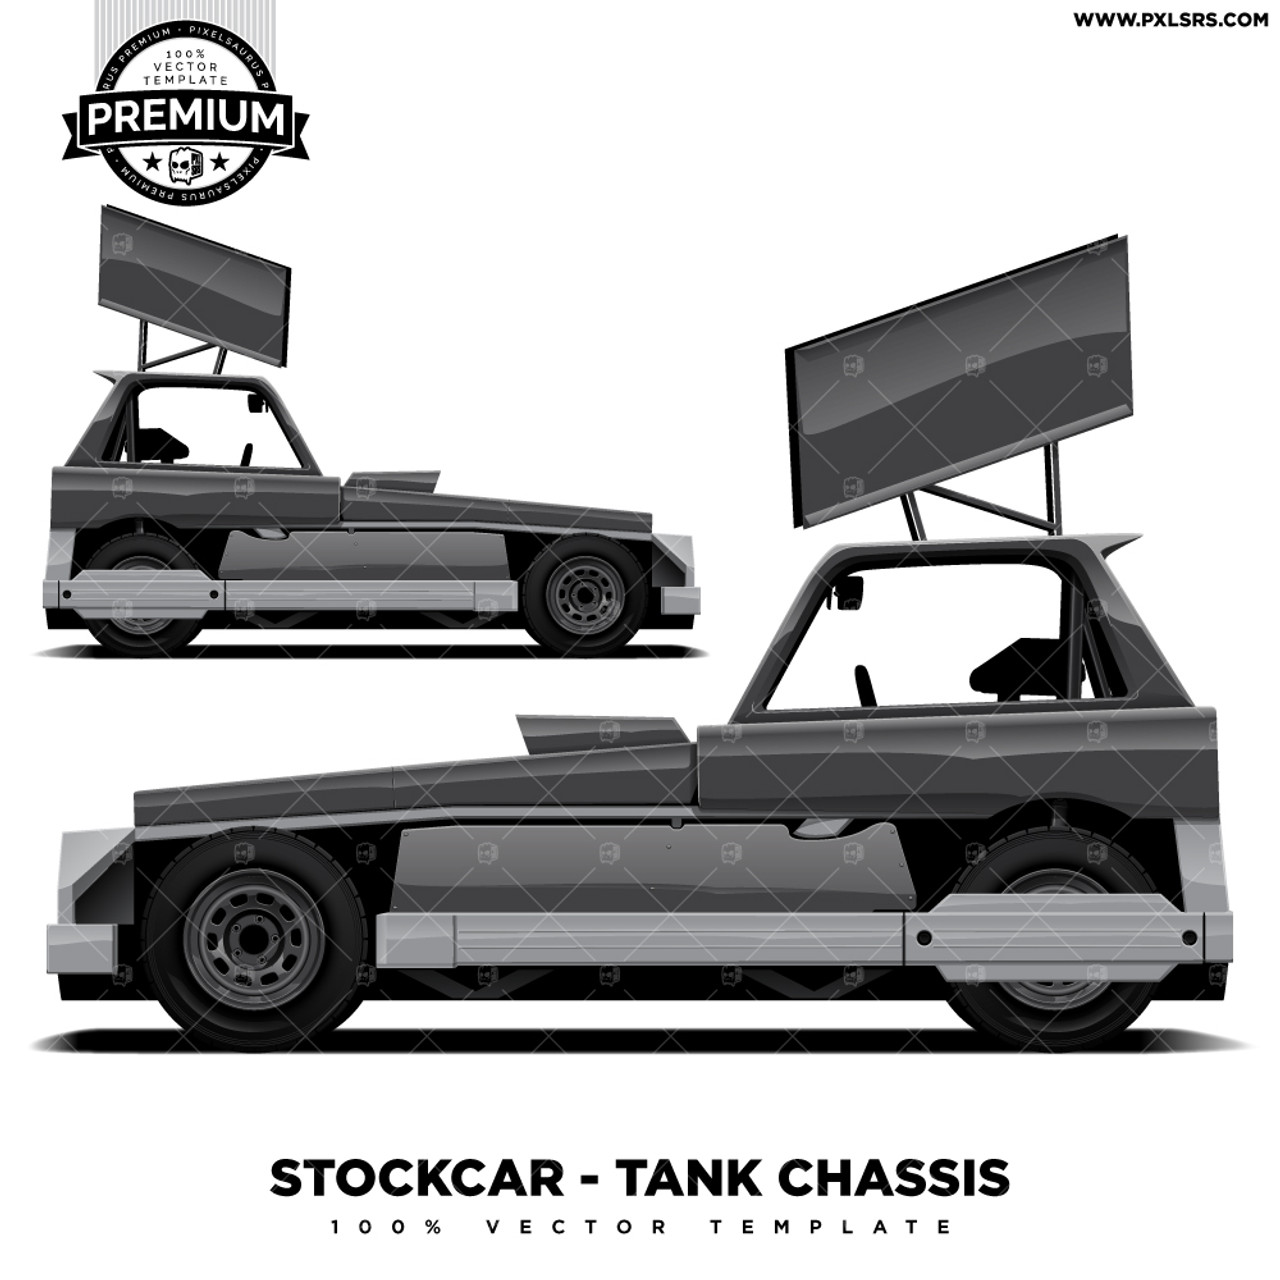 STOCKCAR / SUPERSTOCK - Tank Chassis 'Premium' Vector Template